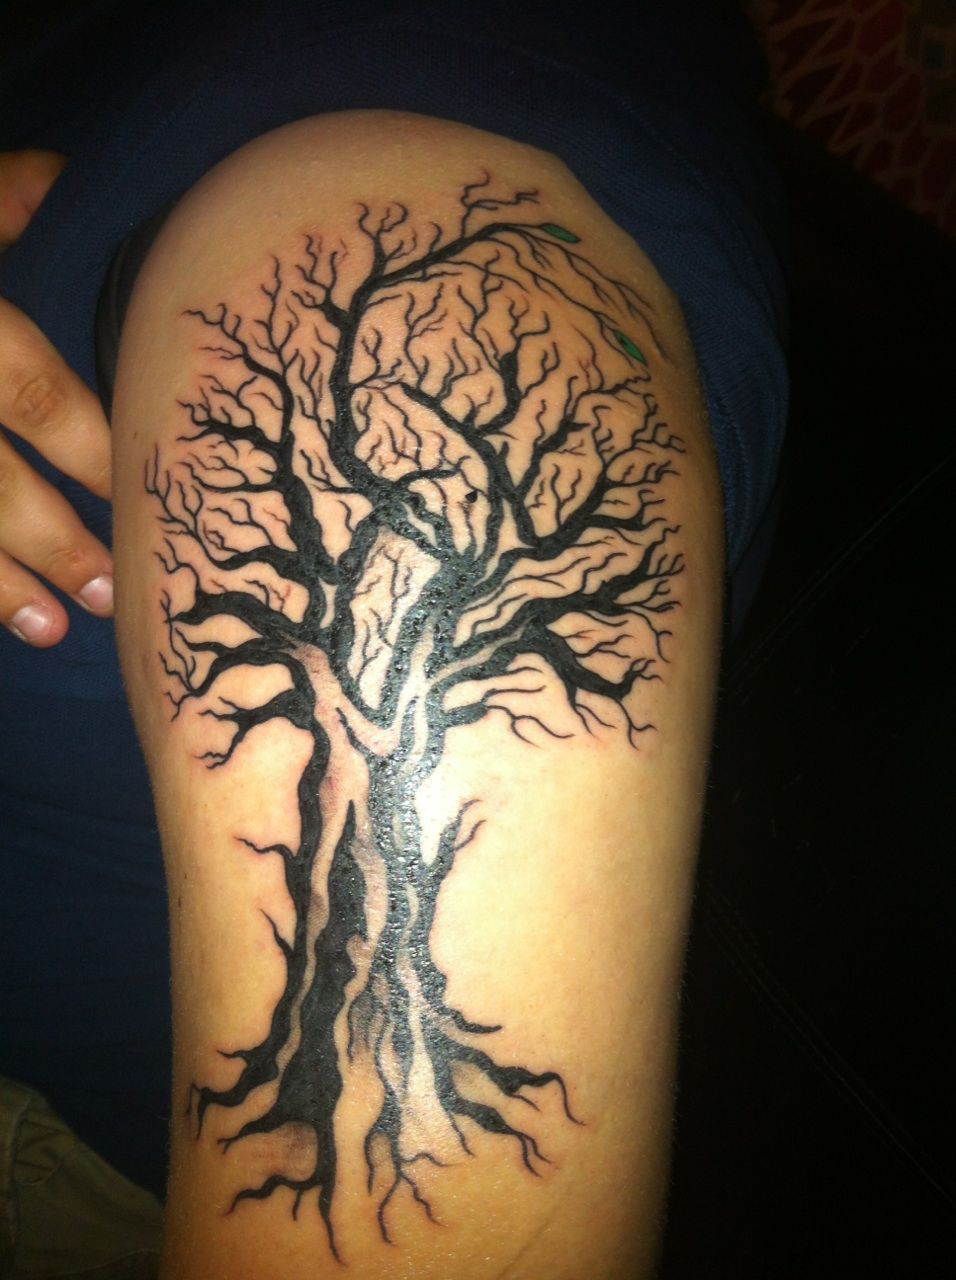 Dead oak tree Tree tattoo meaning, Dead tree tattoo